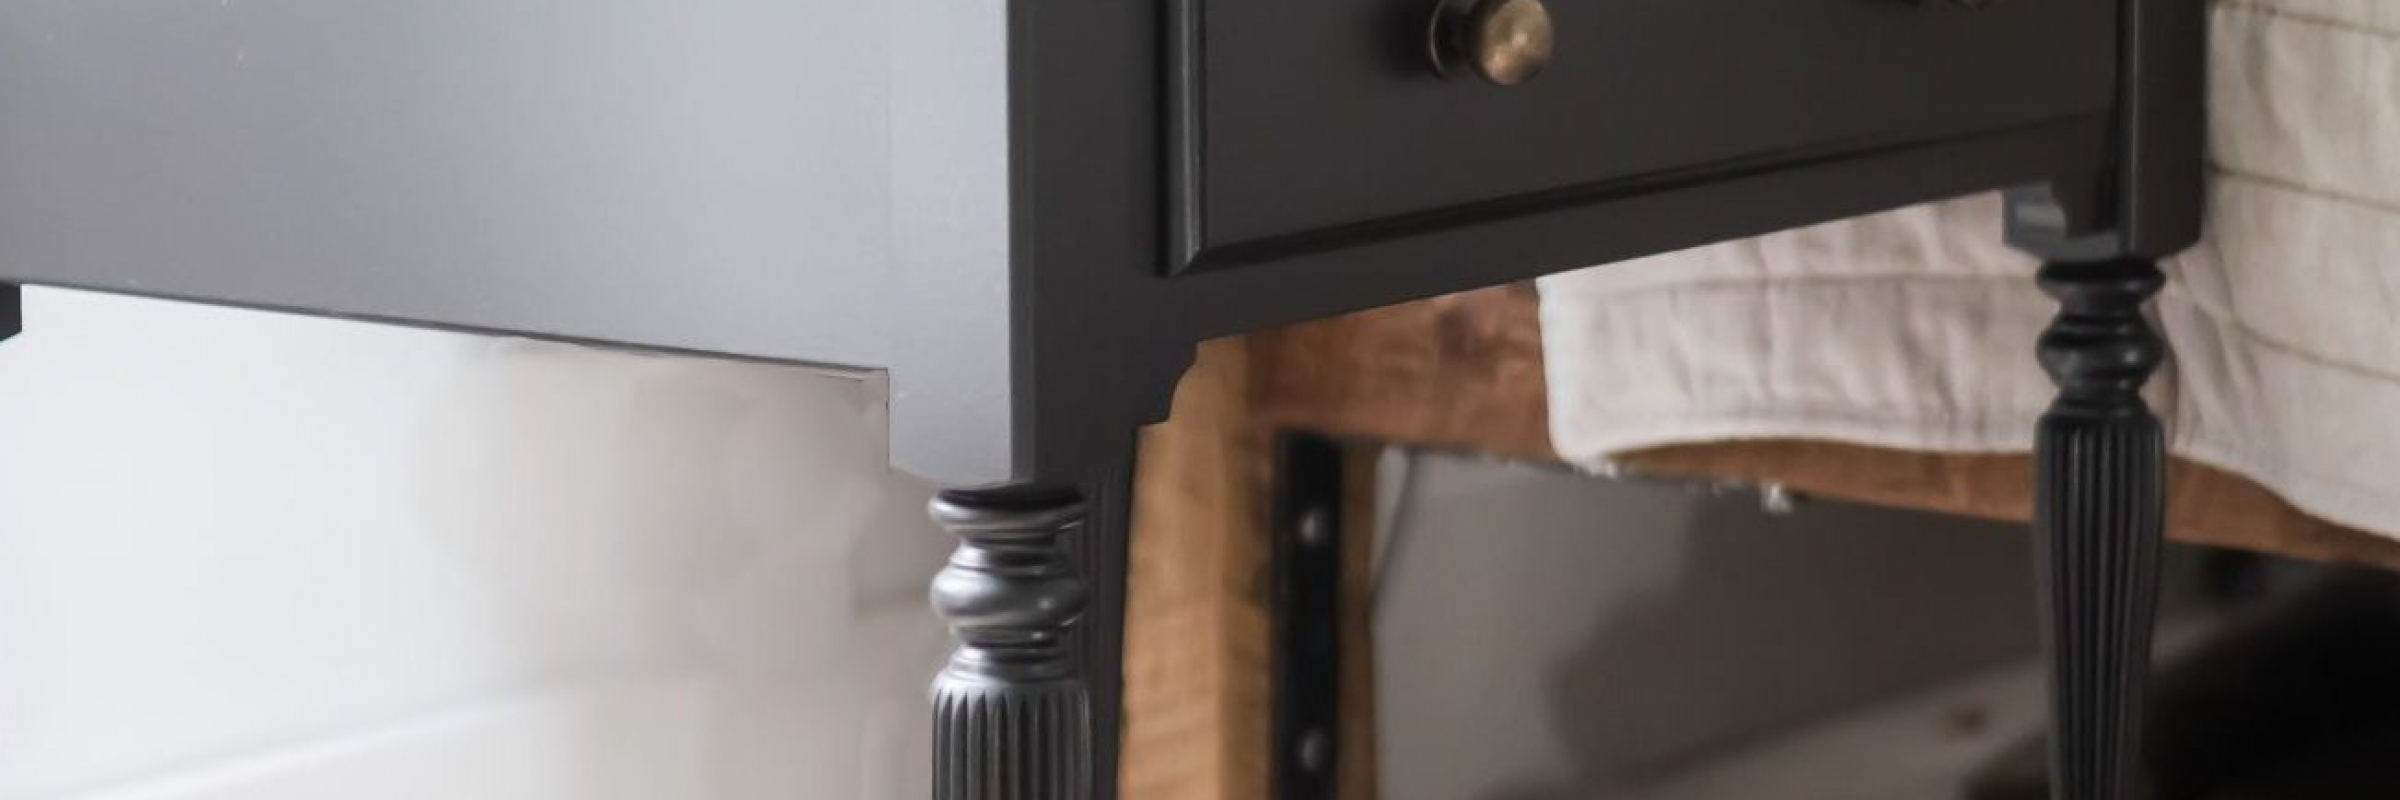 Refinished Chris Loves Julia inspired black nightstands. Deglossed, sanded and painted with Sherwin Williams Caviar.